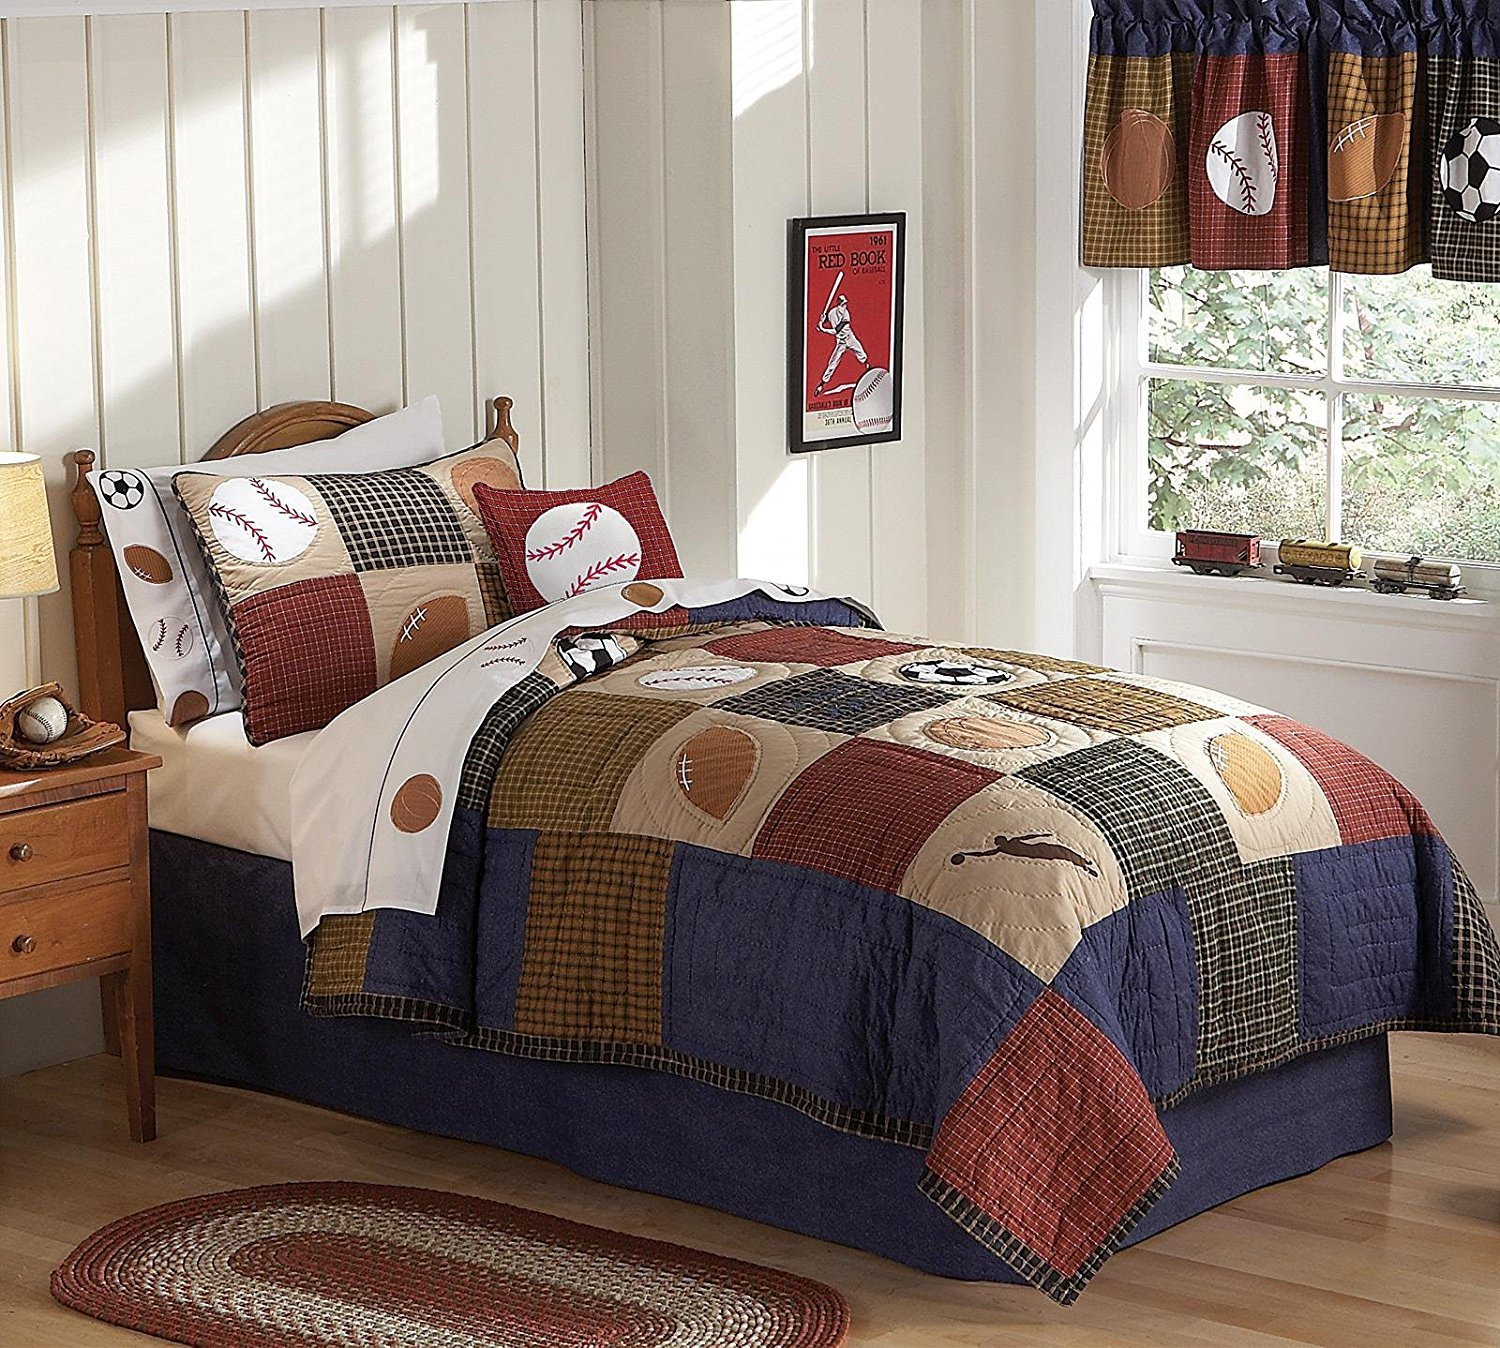 Laura Hart Kids QS6090FQ-2300 Classic Sports Quilt with 2 Shams, Full/Queen by Laura Hart Kids